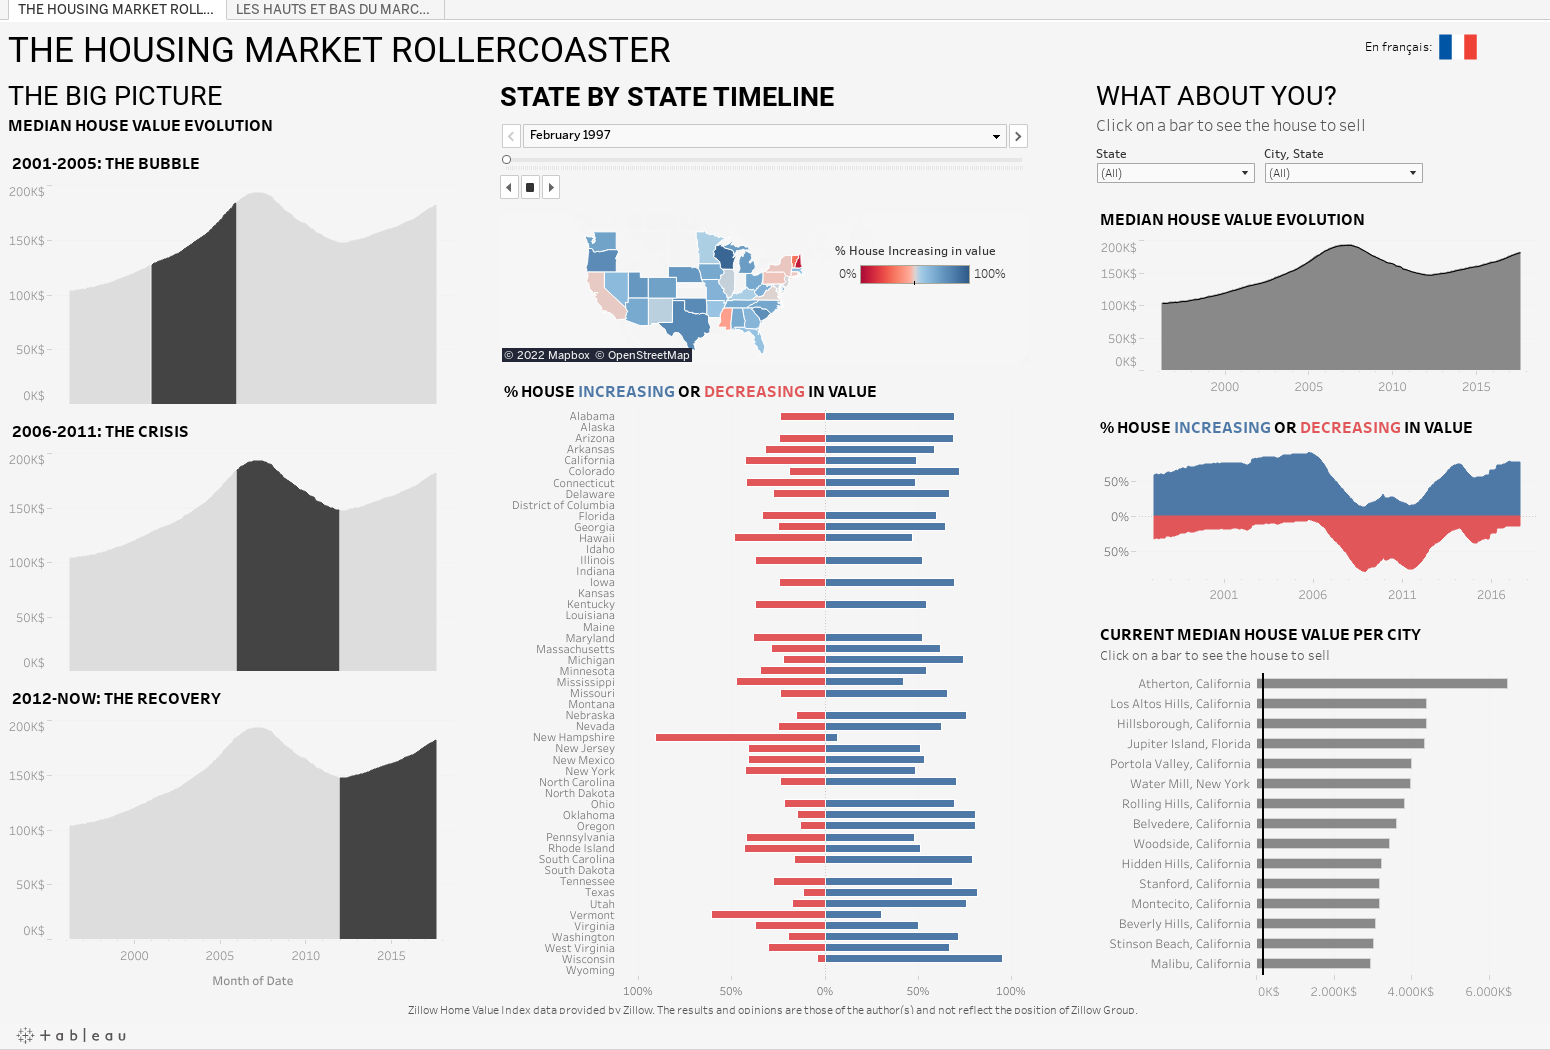 https://public.tableau.com/static/images/IR/IRONVIZ-TheHousingMarketRollercoaster/THEHOUSINGMARKETROLLERCOASTER/1.png